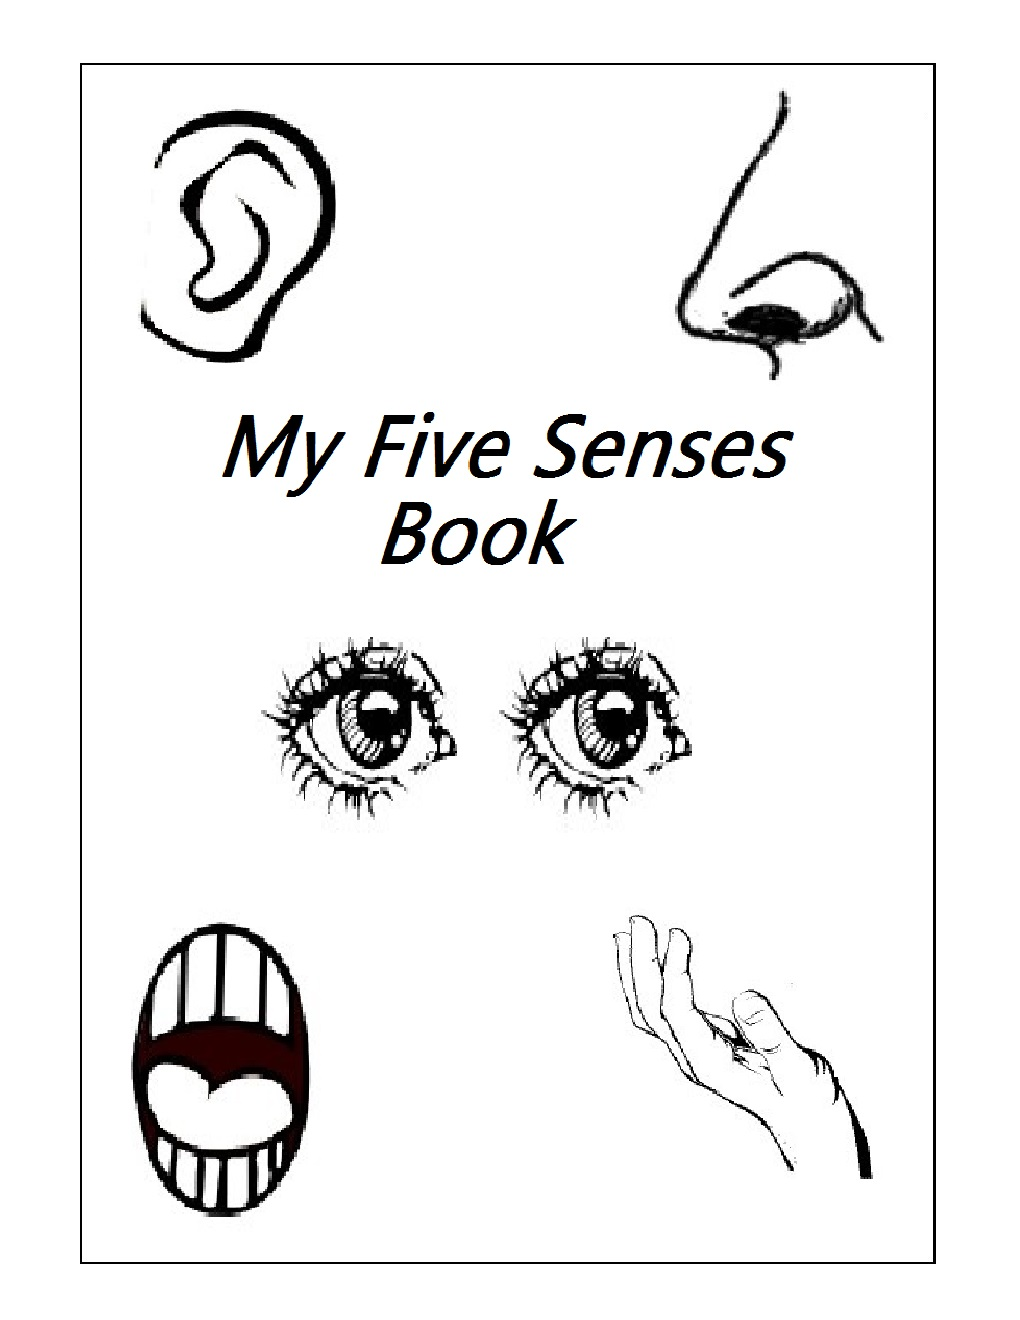 math worksheet : kindergarten worksheets january 2016 : Five Senses Kindergarten Worksheets